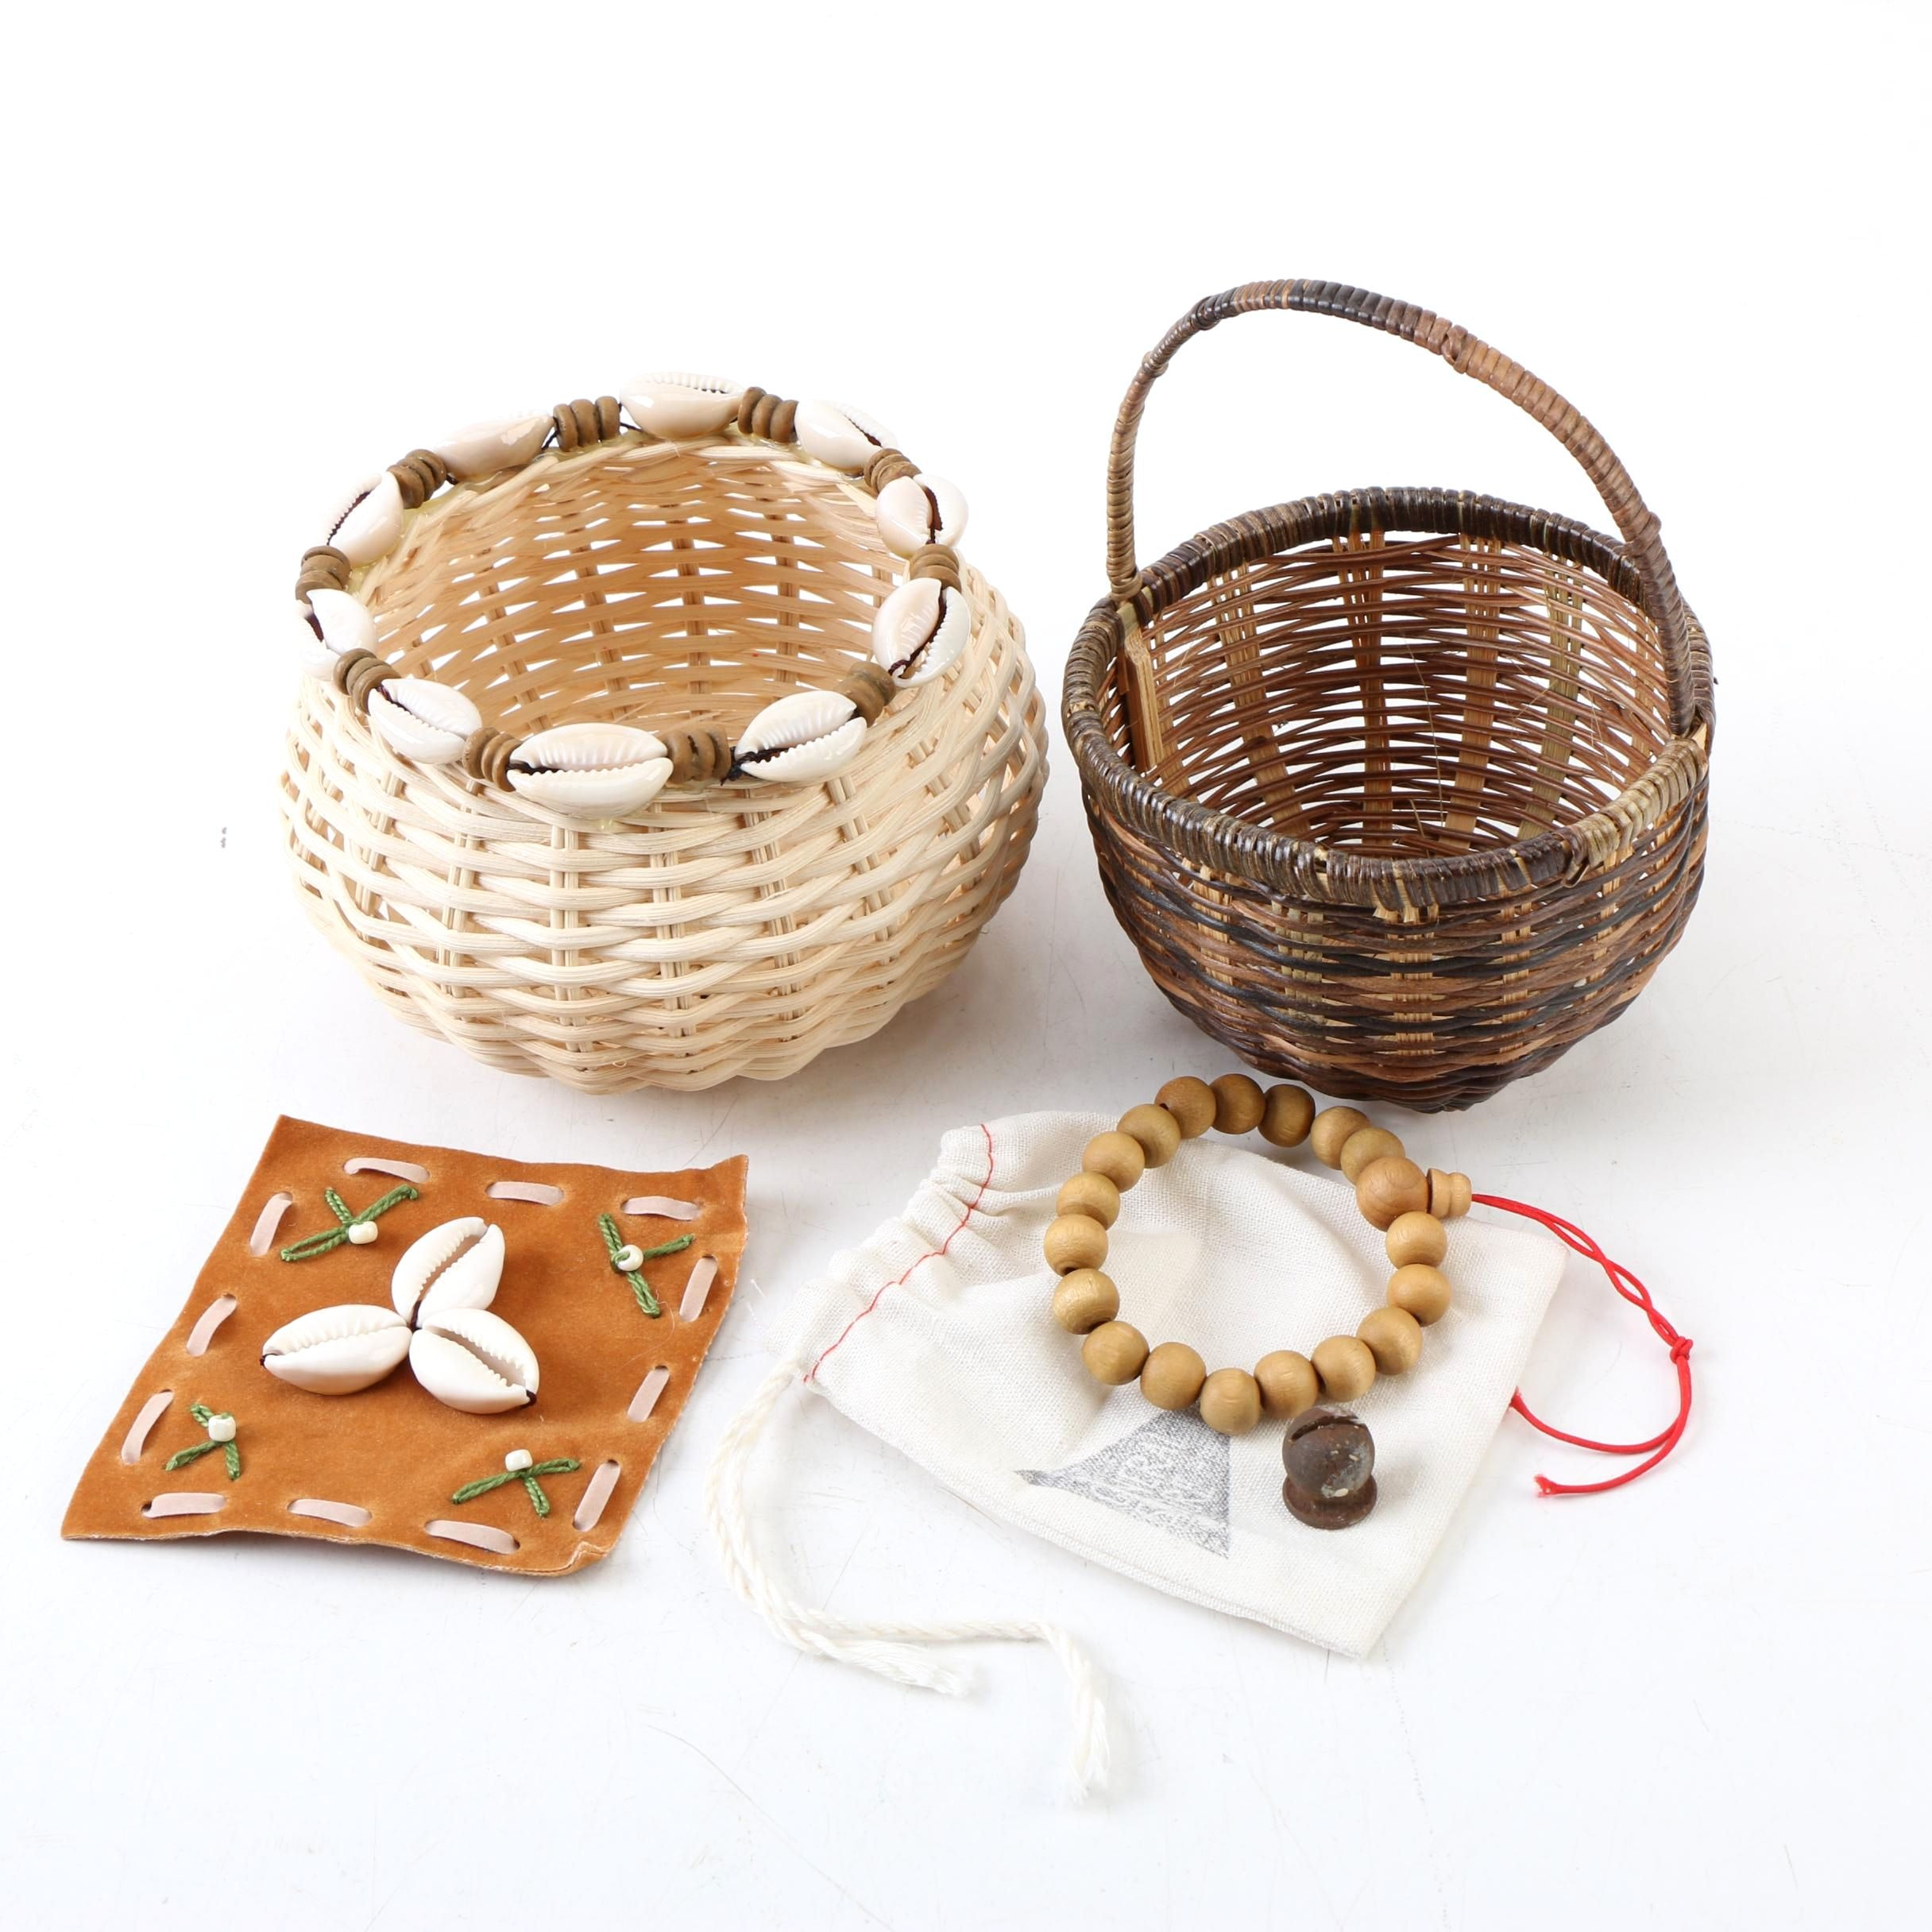 Wicker Baskets and Accessories with Cowrie Shell Accents